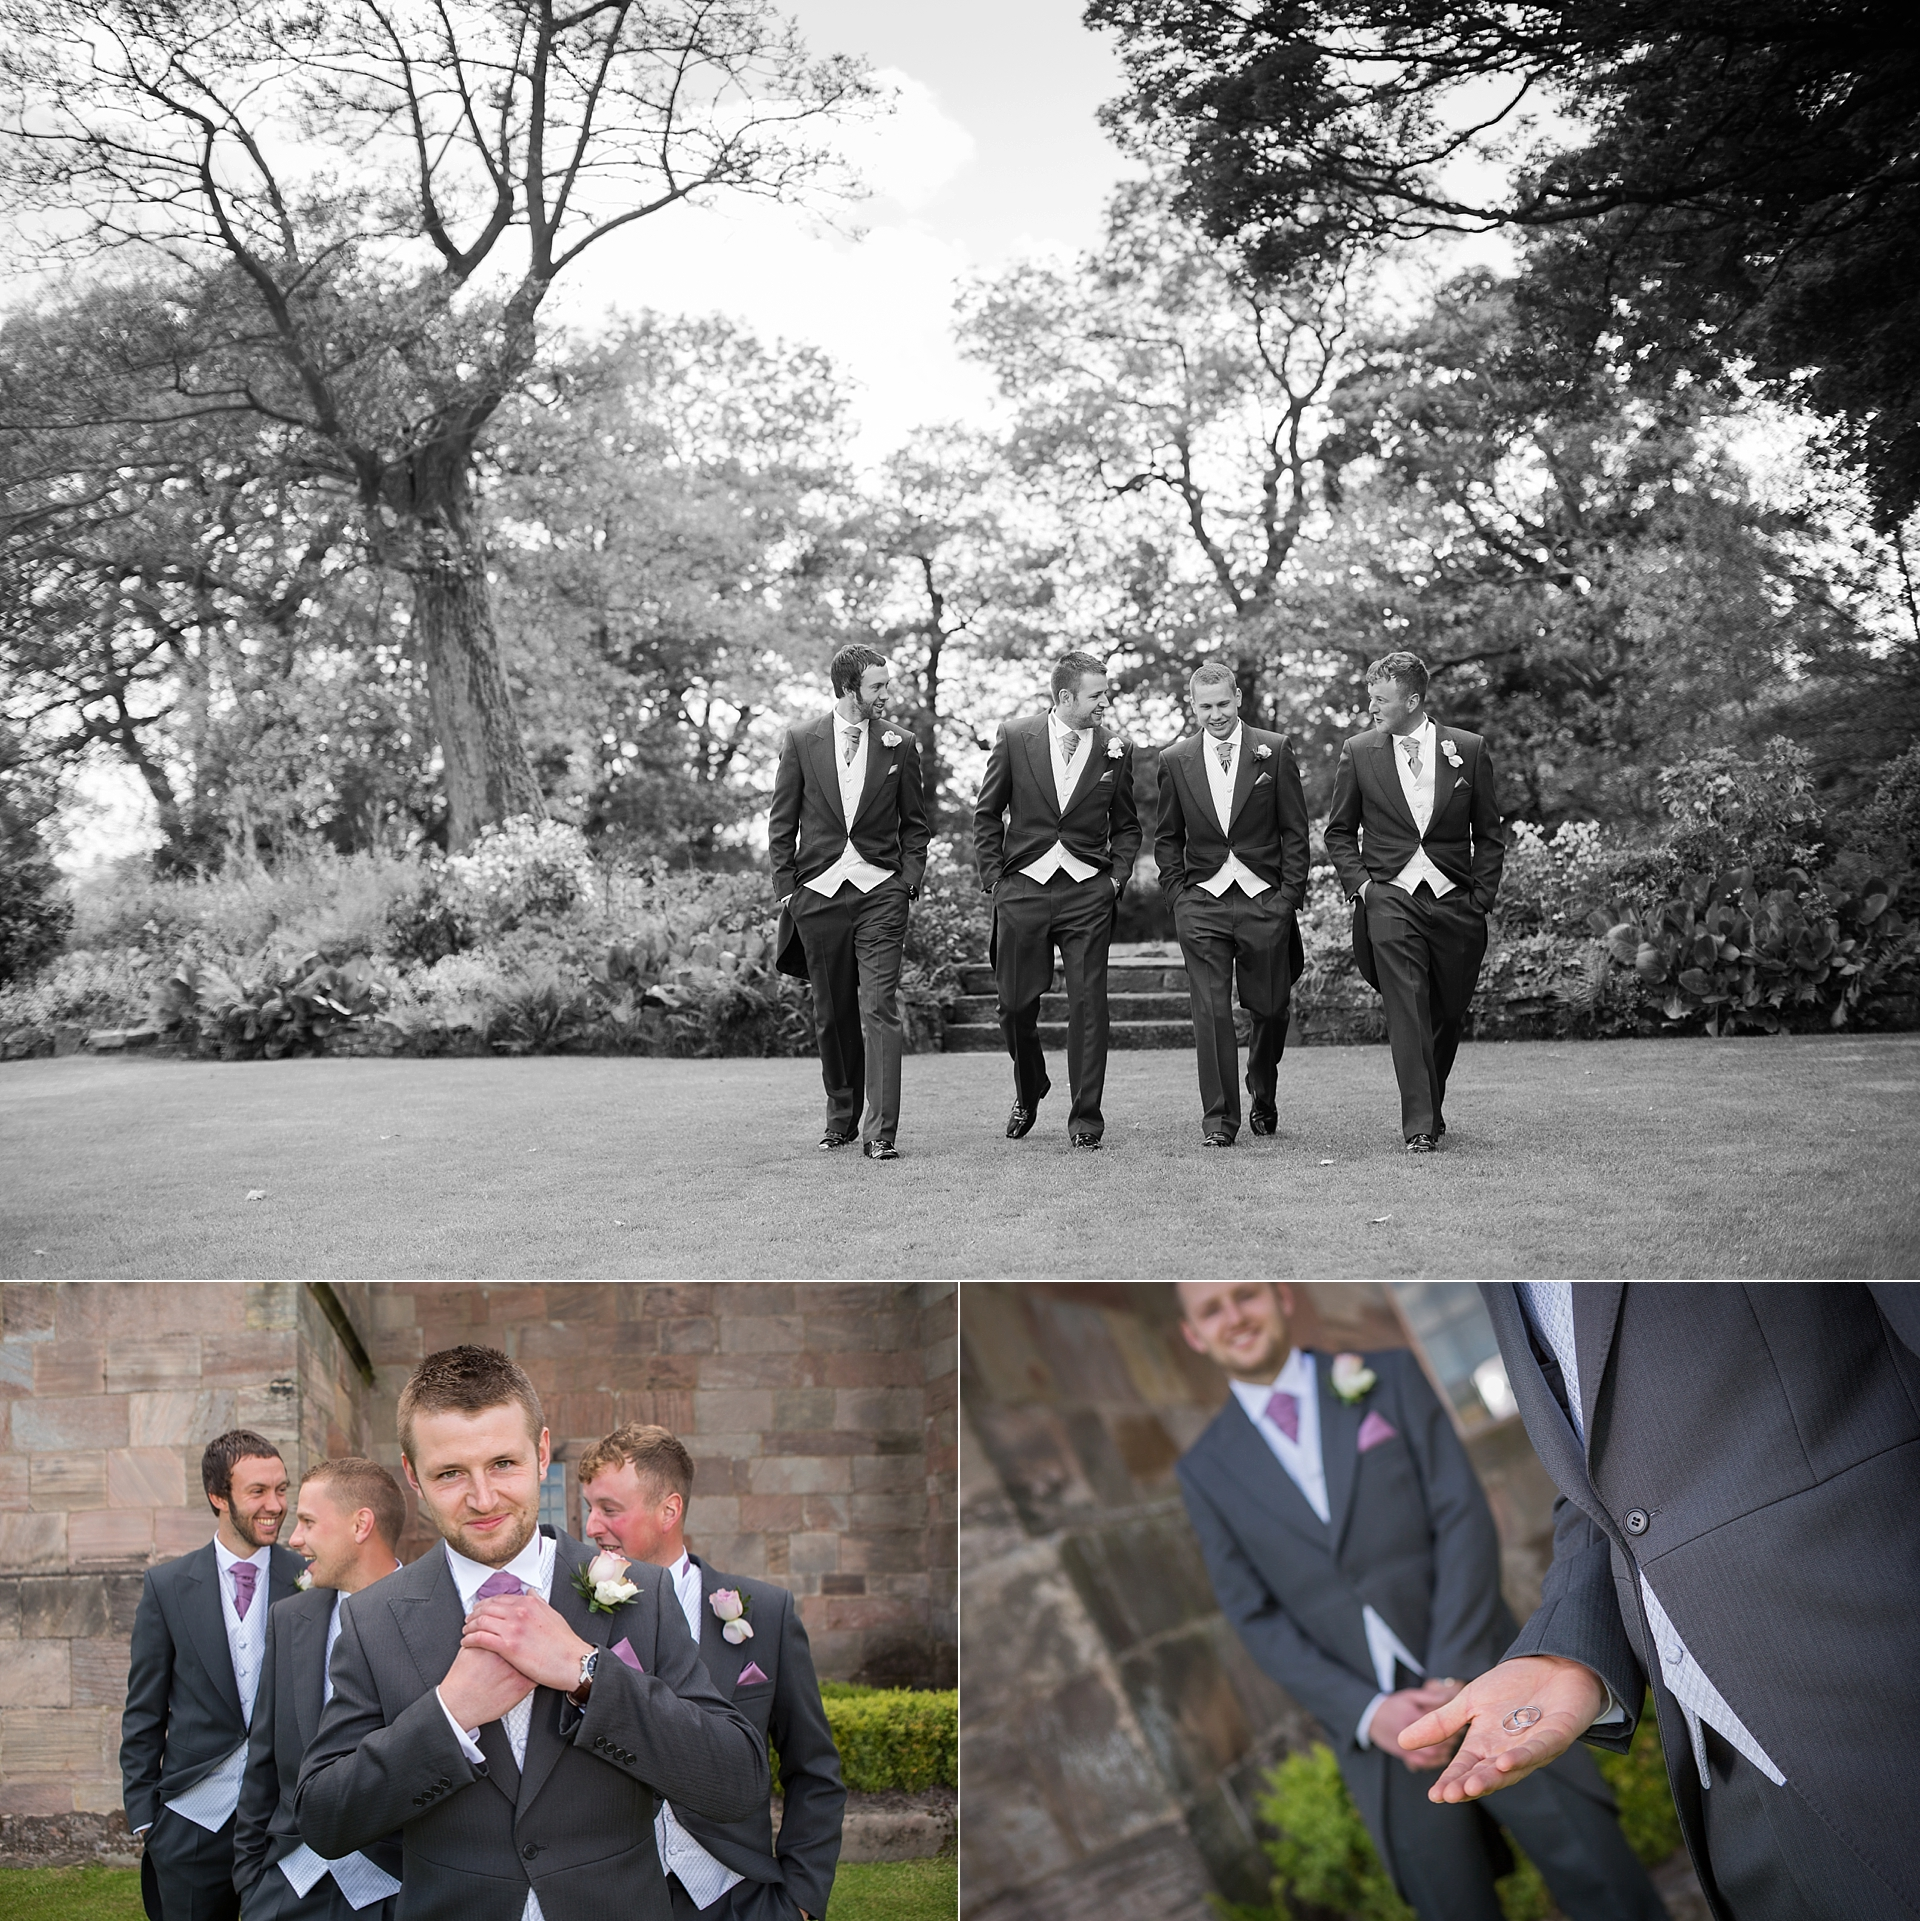 wedding photographer stoke on trent the ashes endon 7.jpg